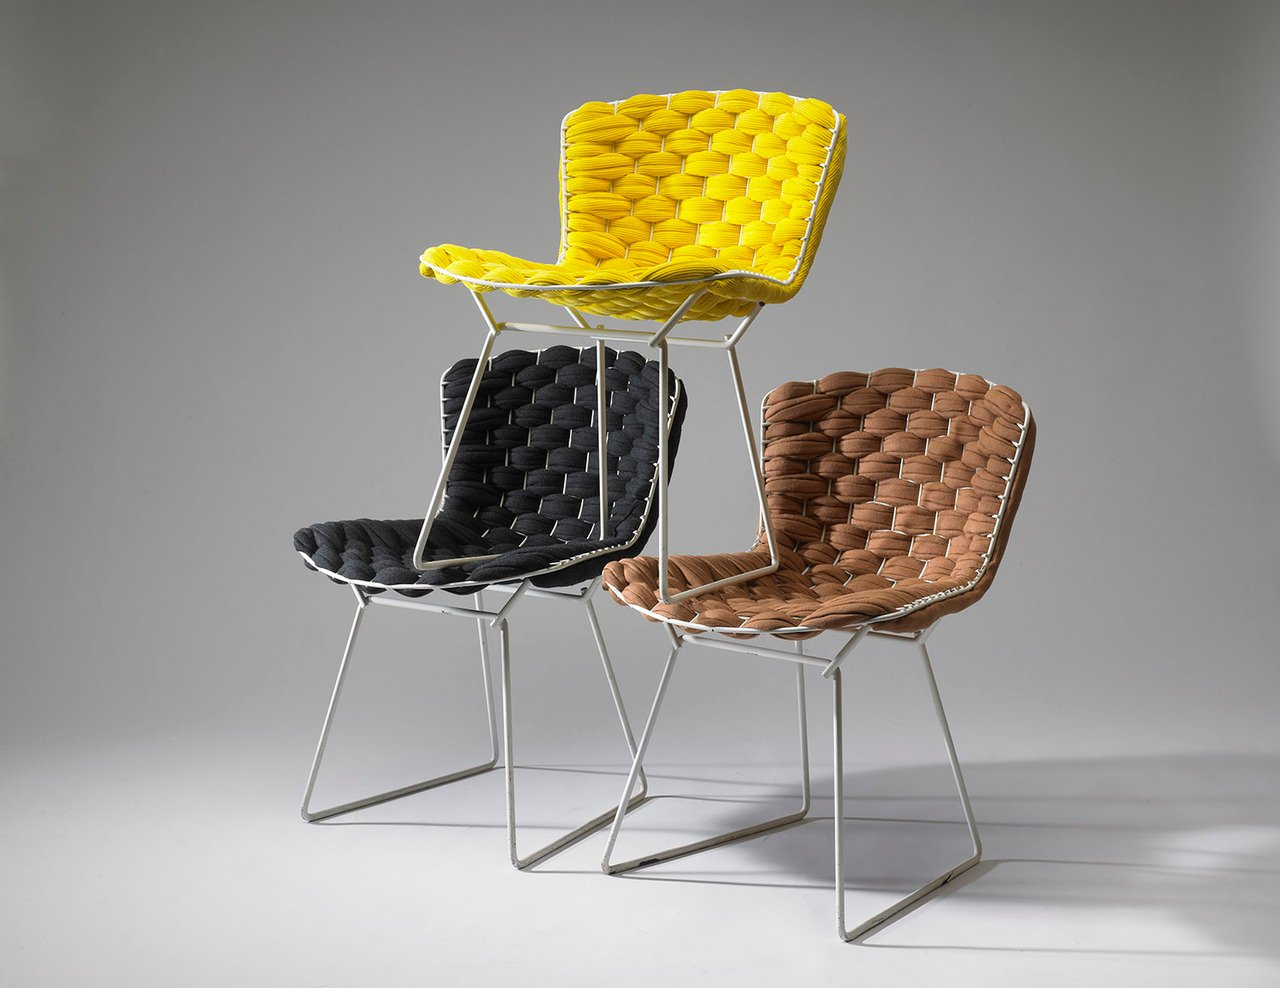 French design, Clément Brazille, Bertoia chairs, classic with a twist, classic redesign, woden fabric upholstery, Wire Chair, Bertoia Loom Chair